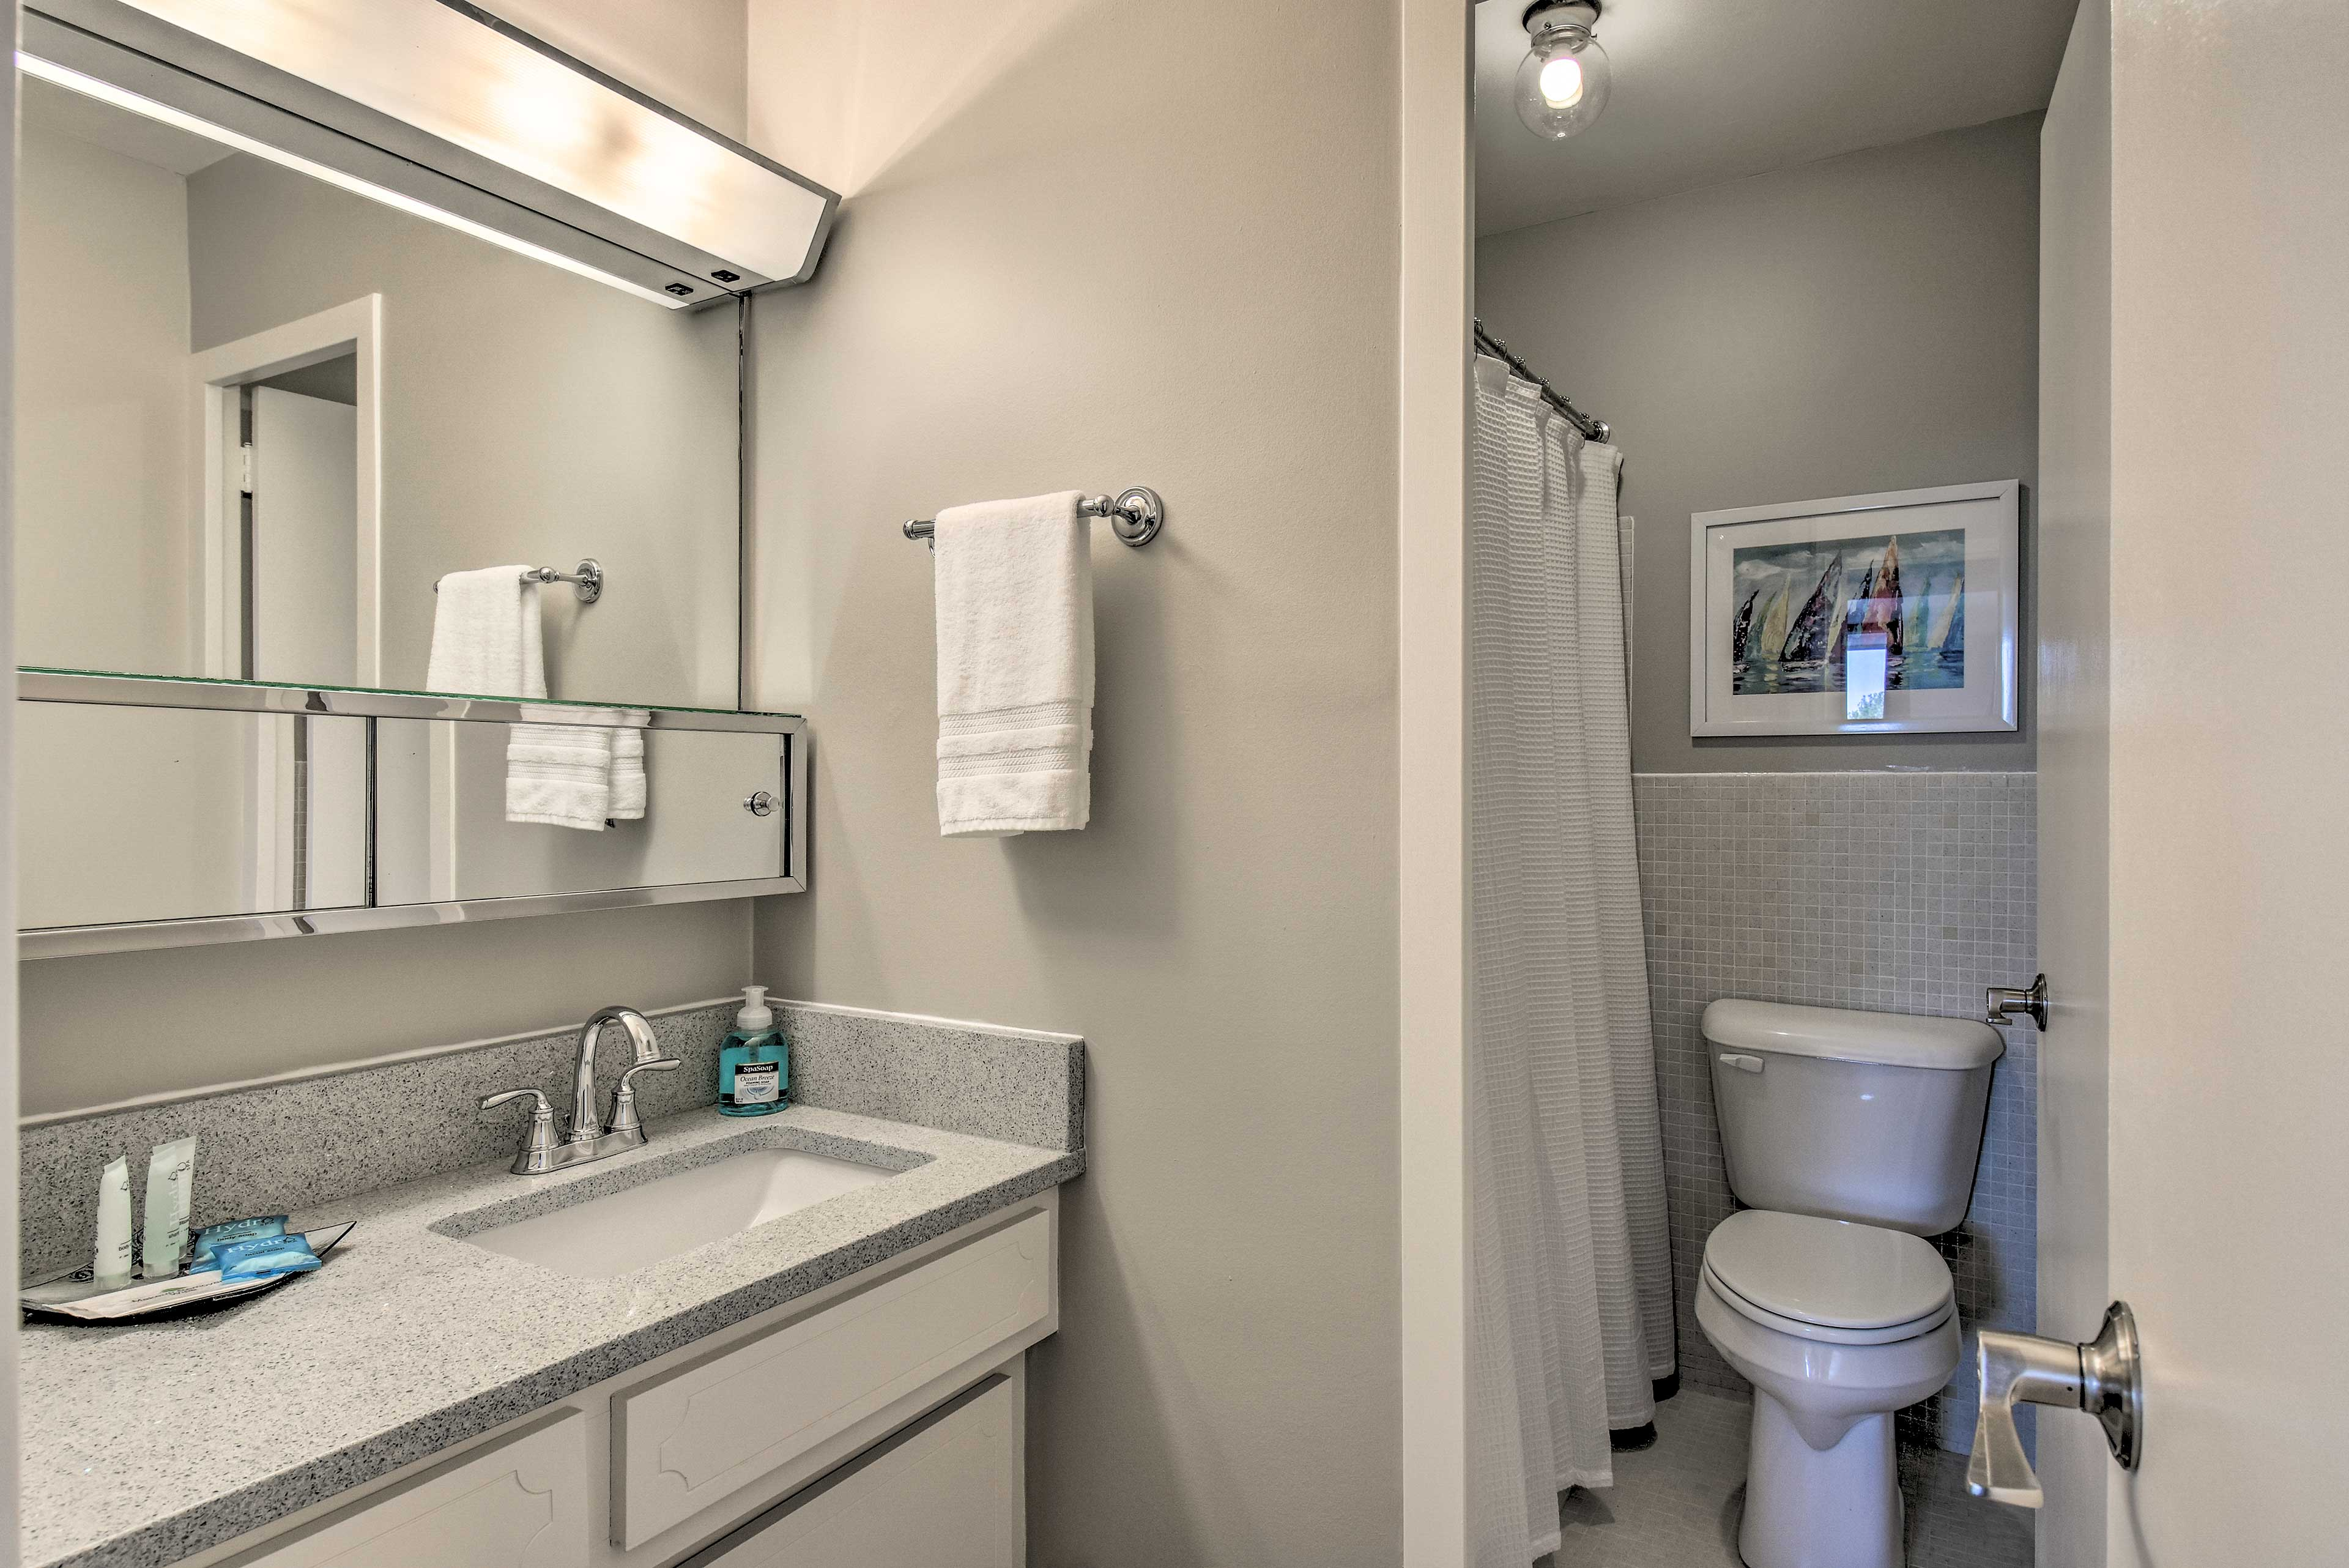 Spread your toiletries out on the ample countertops while you get ready.